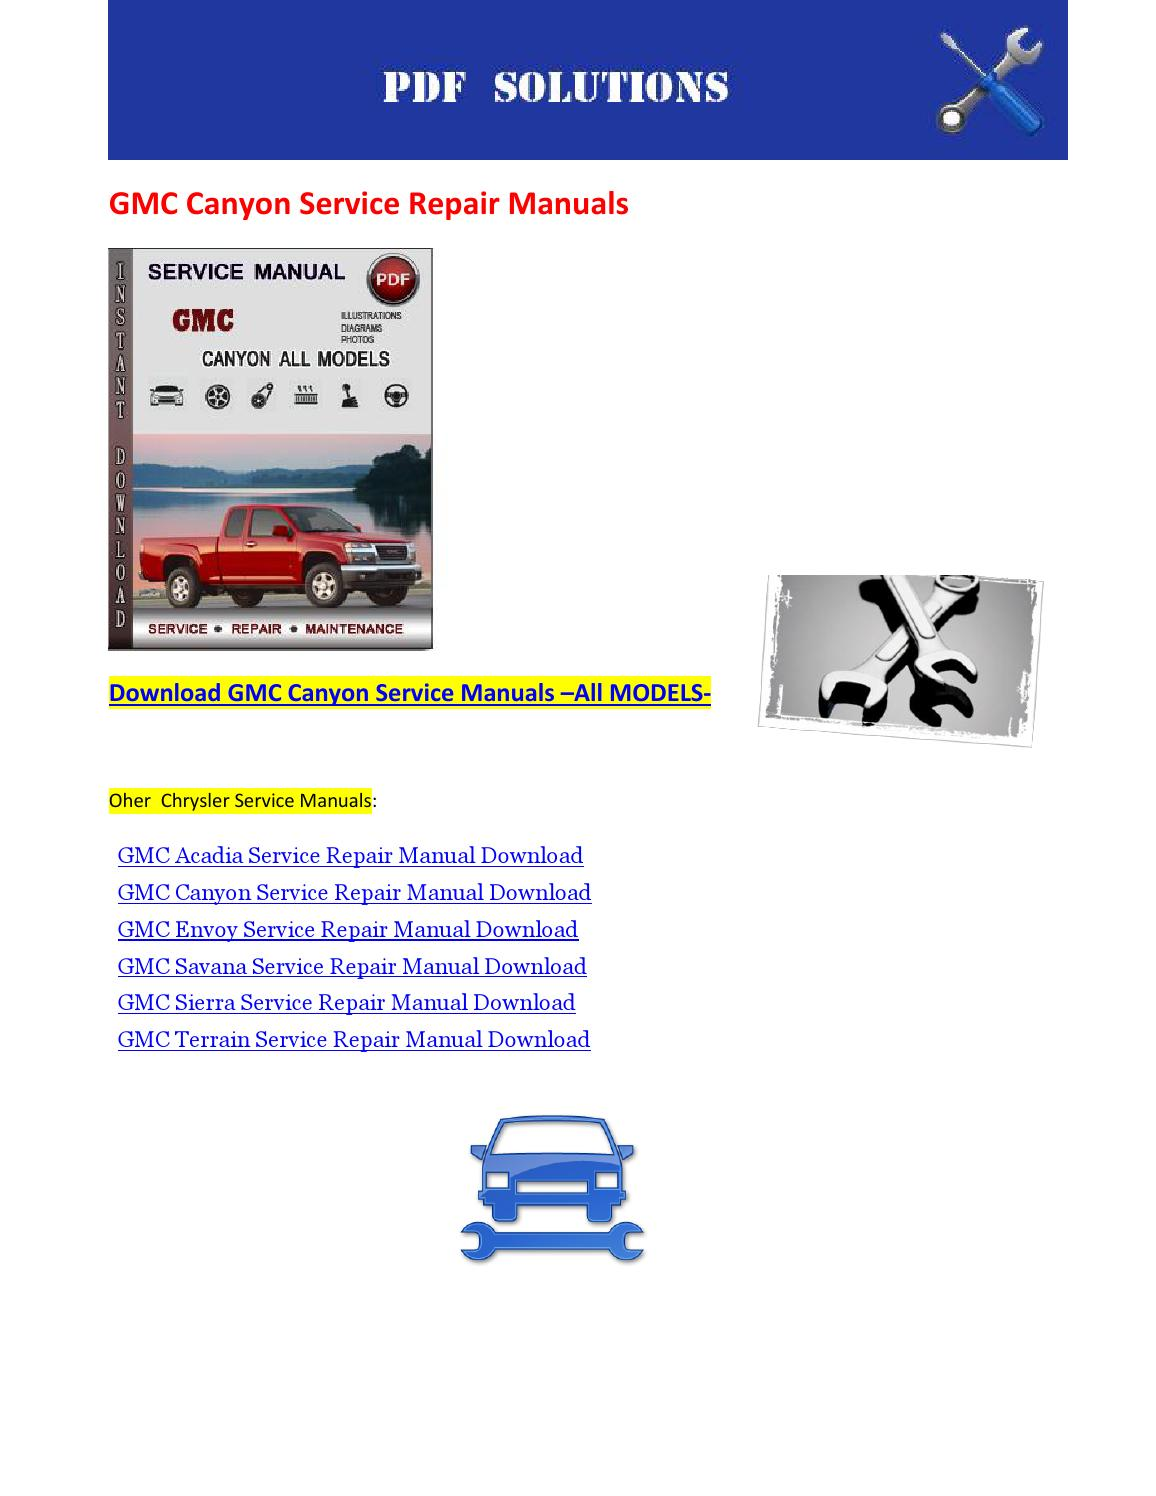 gmc canyon service repair manuals by nissanexpert issuu rh issuu com Buick Factory Service Manuals gmc envoy repair manual free download